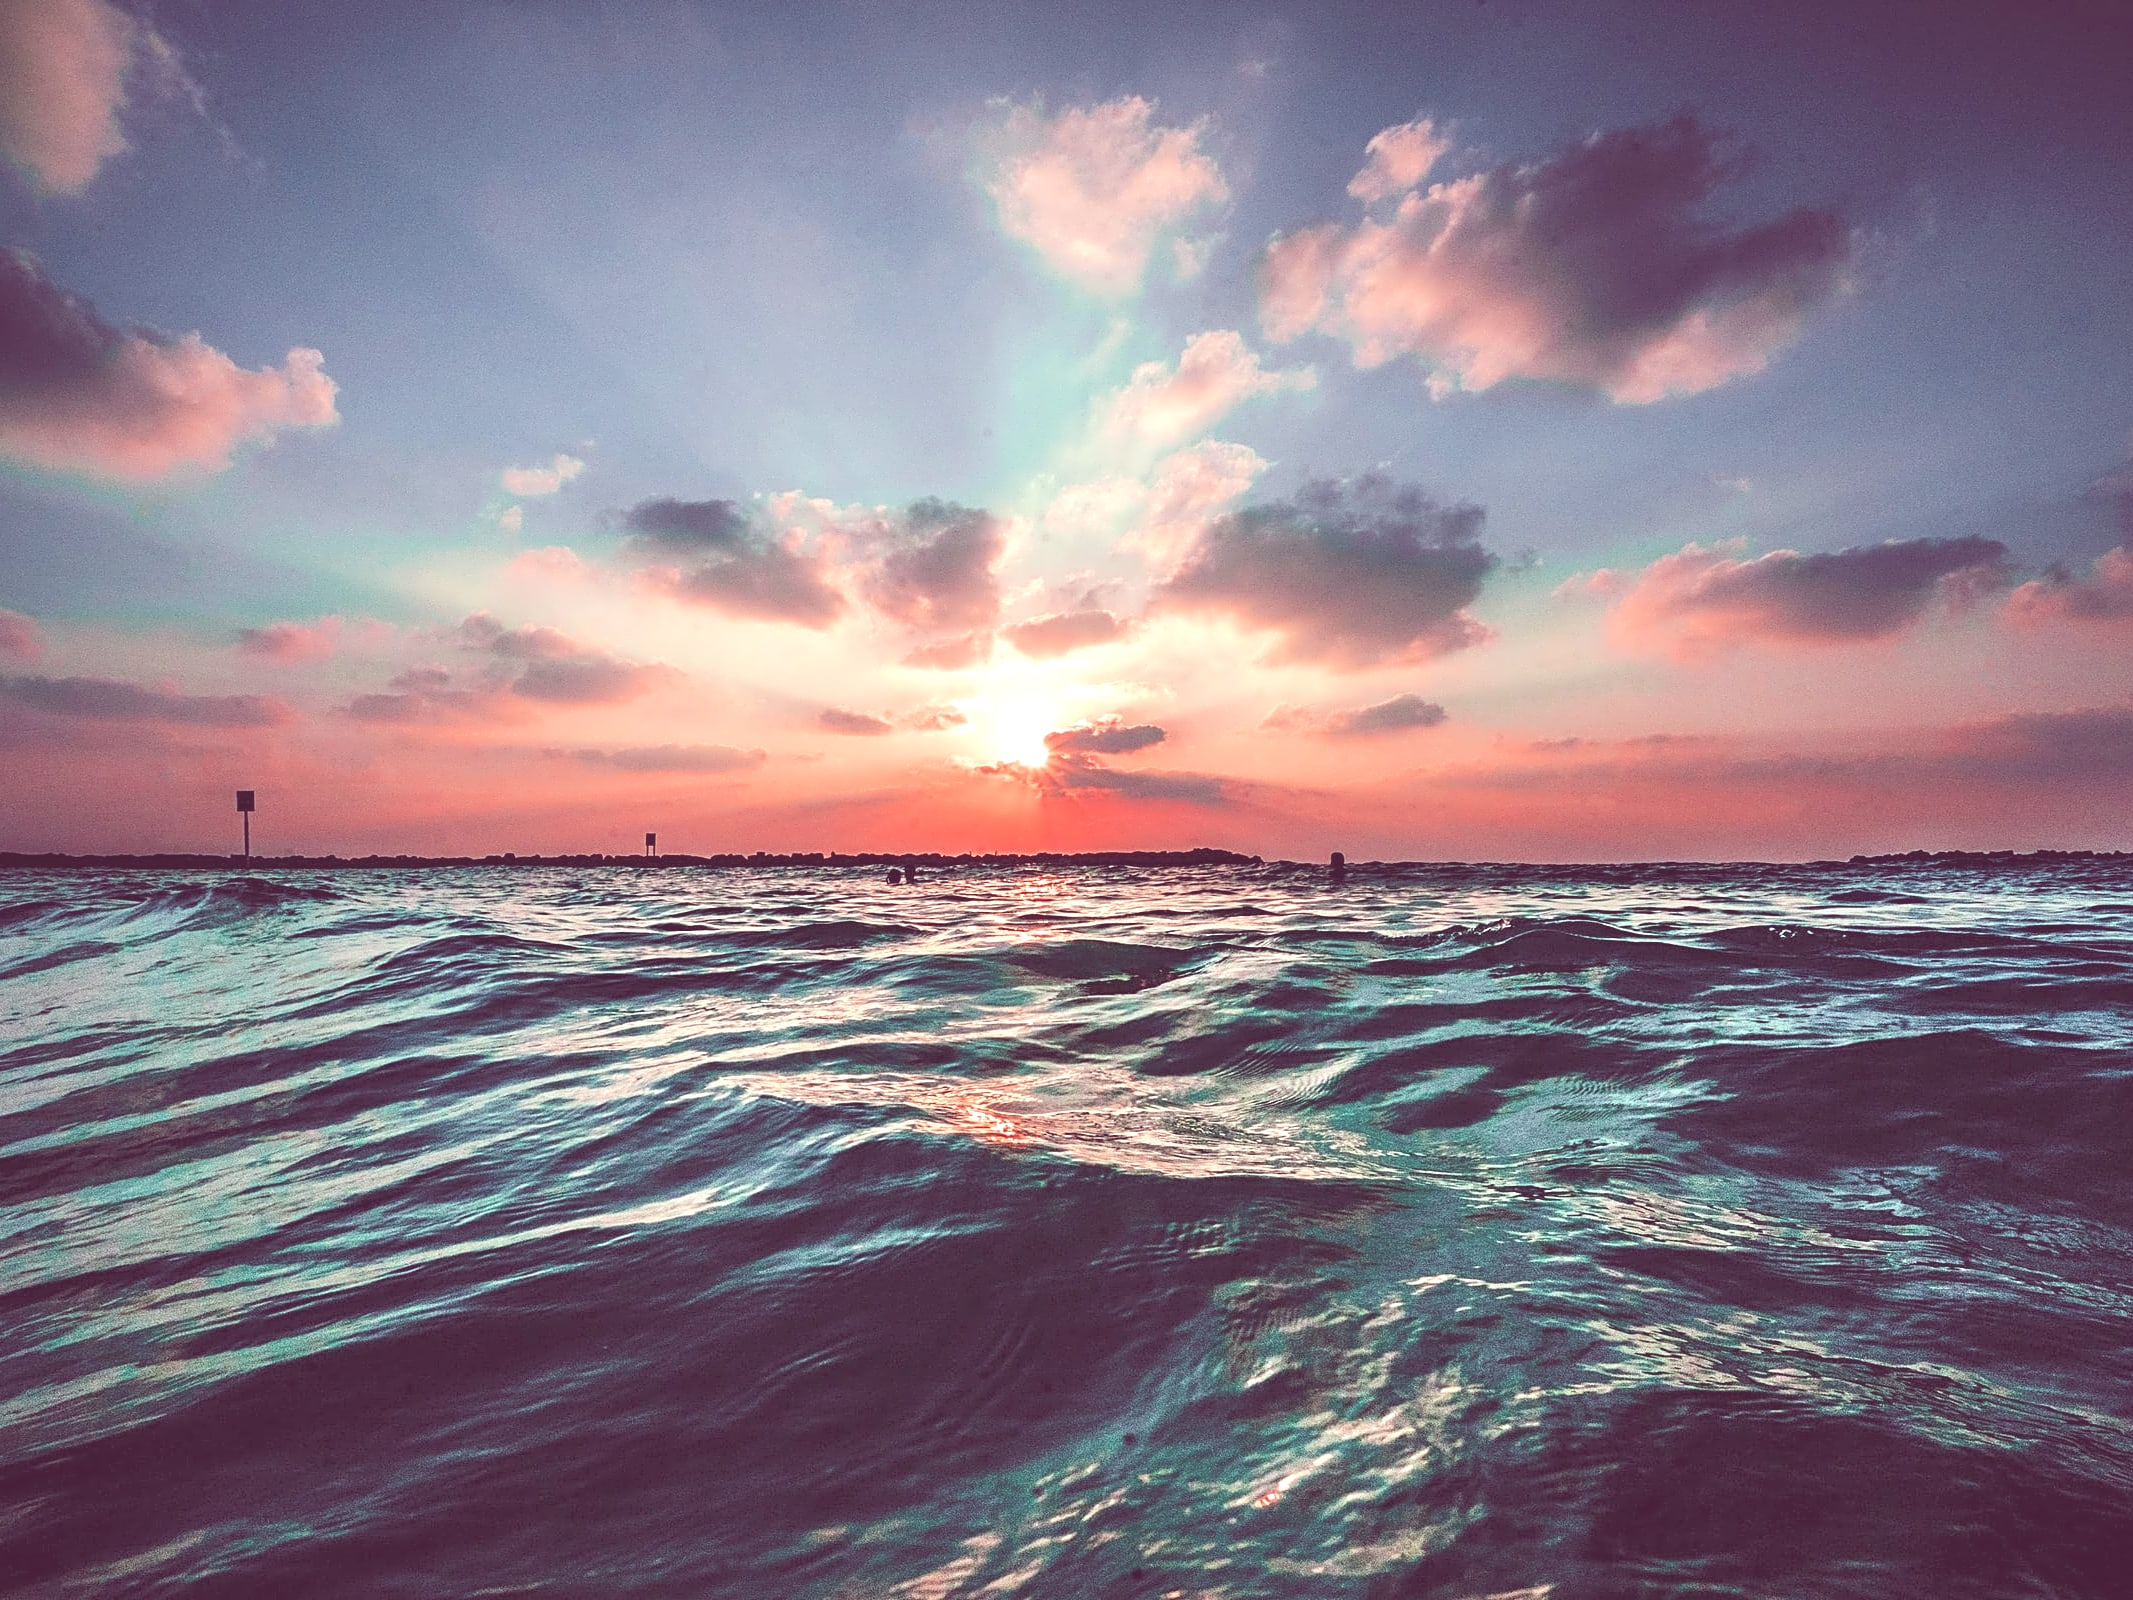 An image of a sunset over a large body of water, by @jbcreate_ on Unsplash.